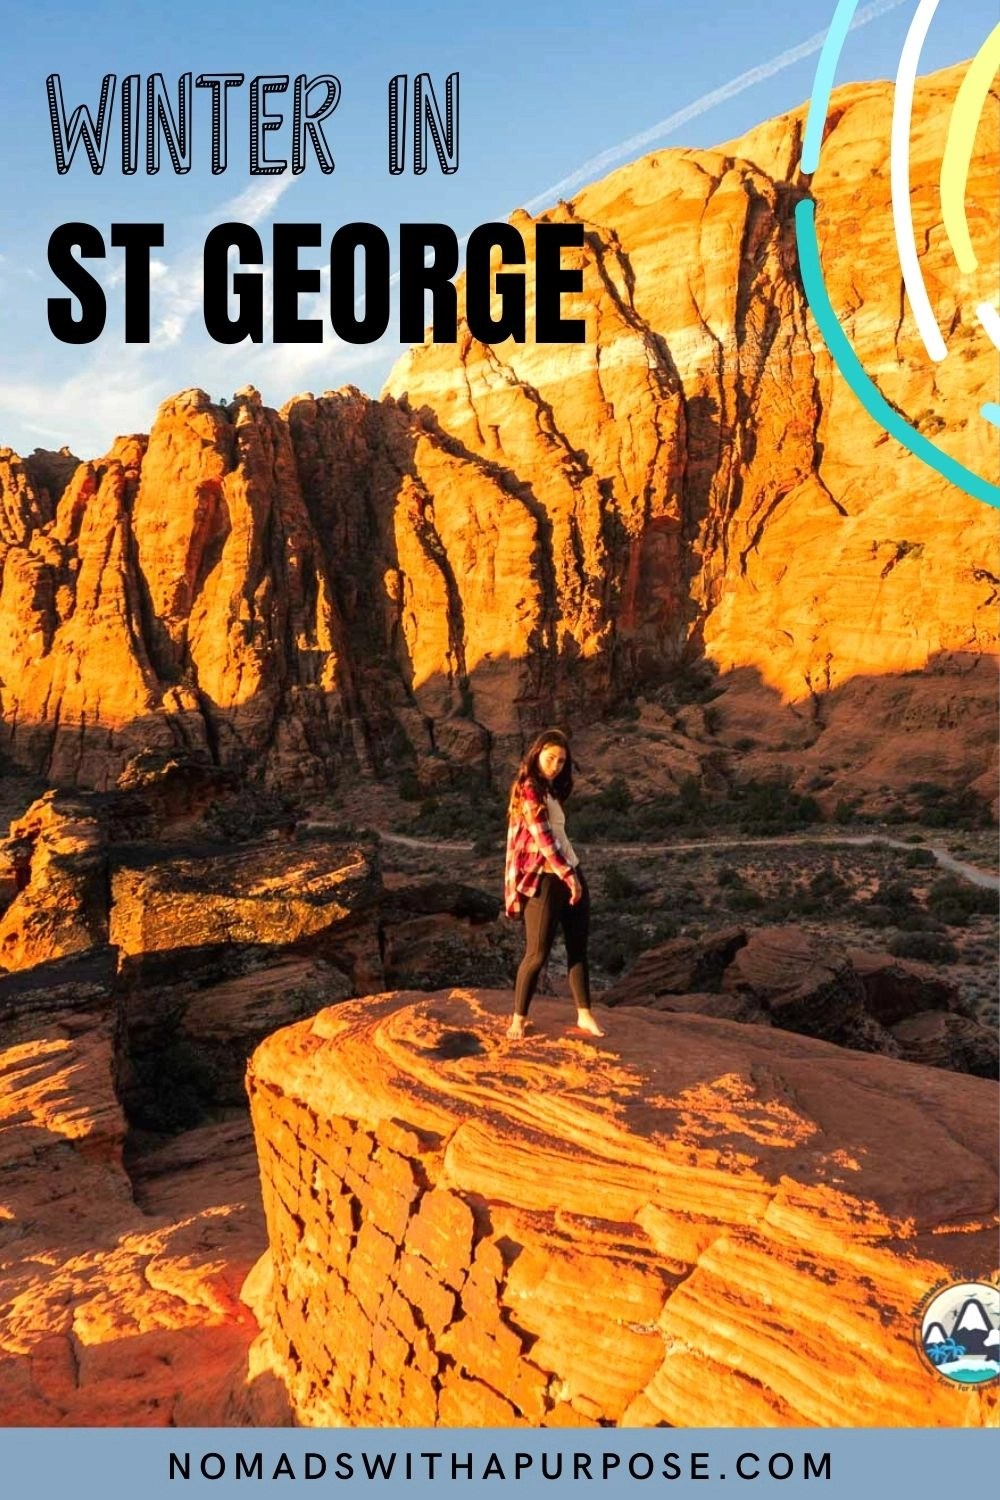 Winter in St George